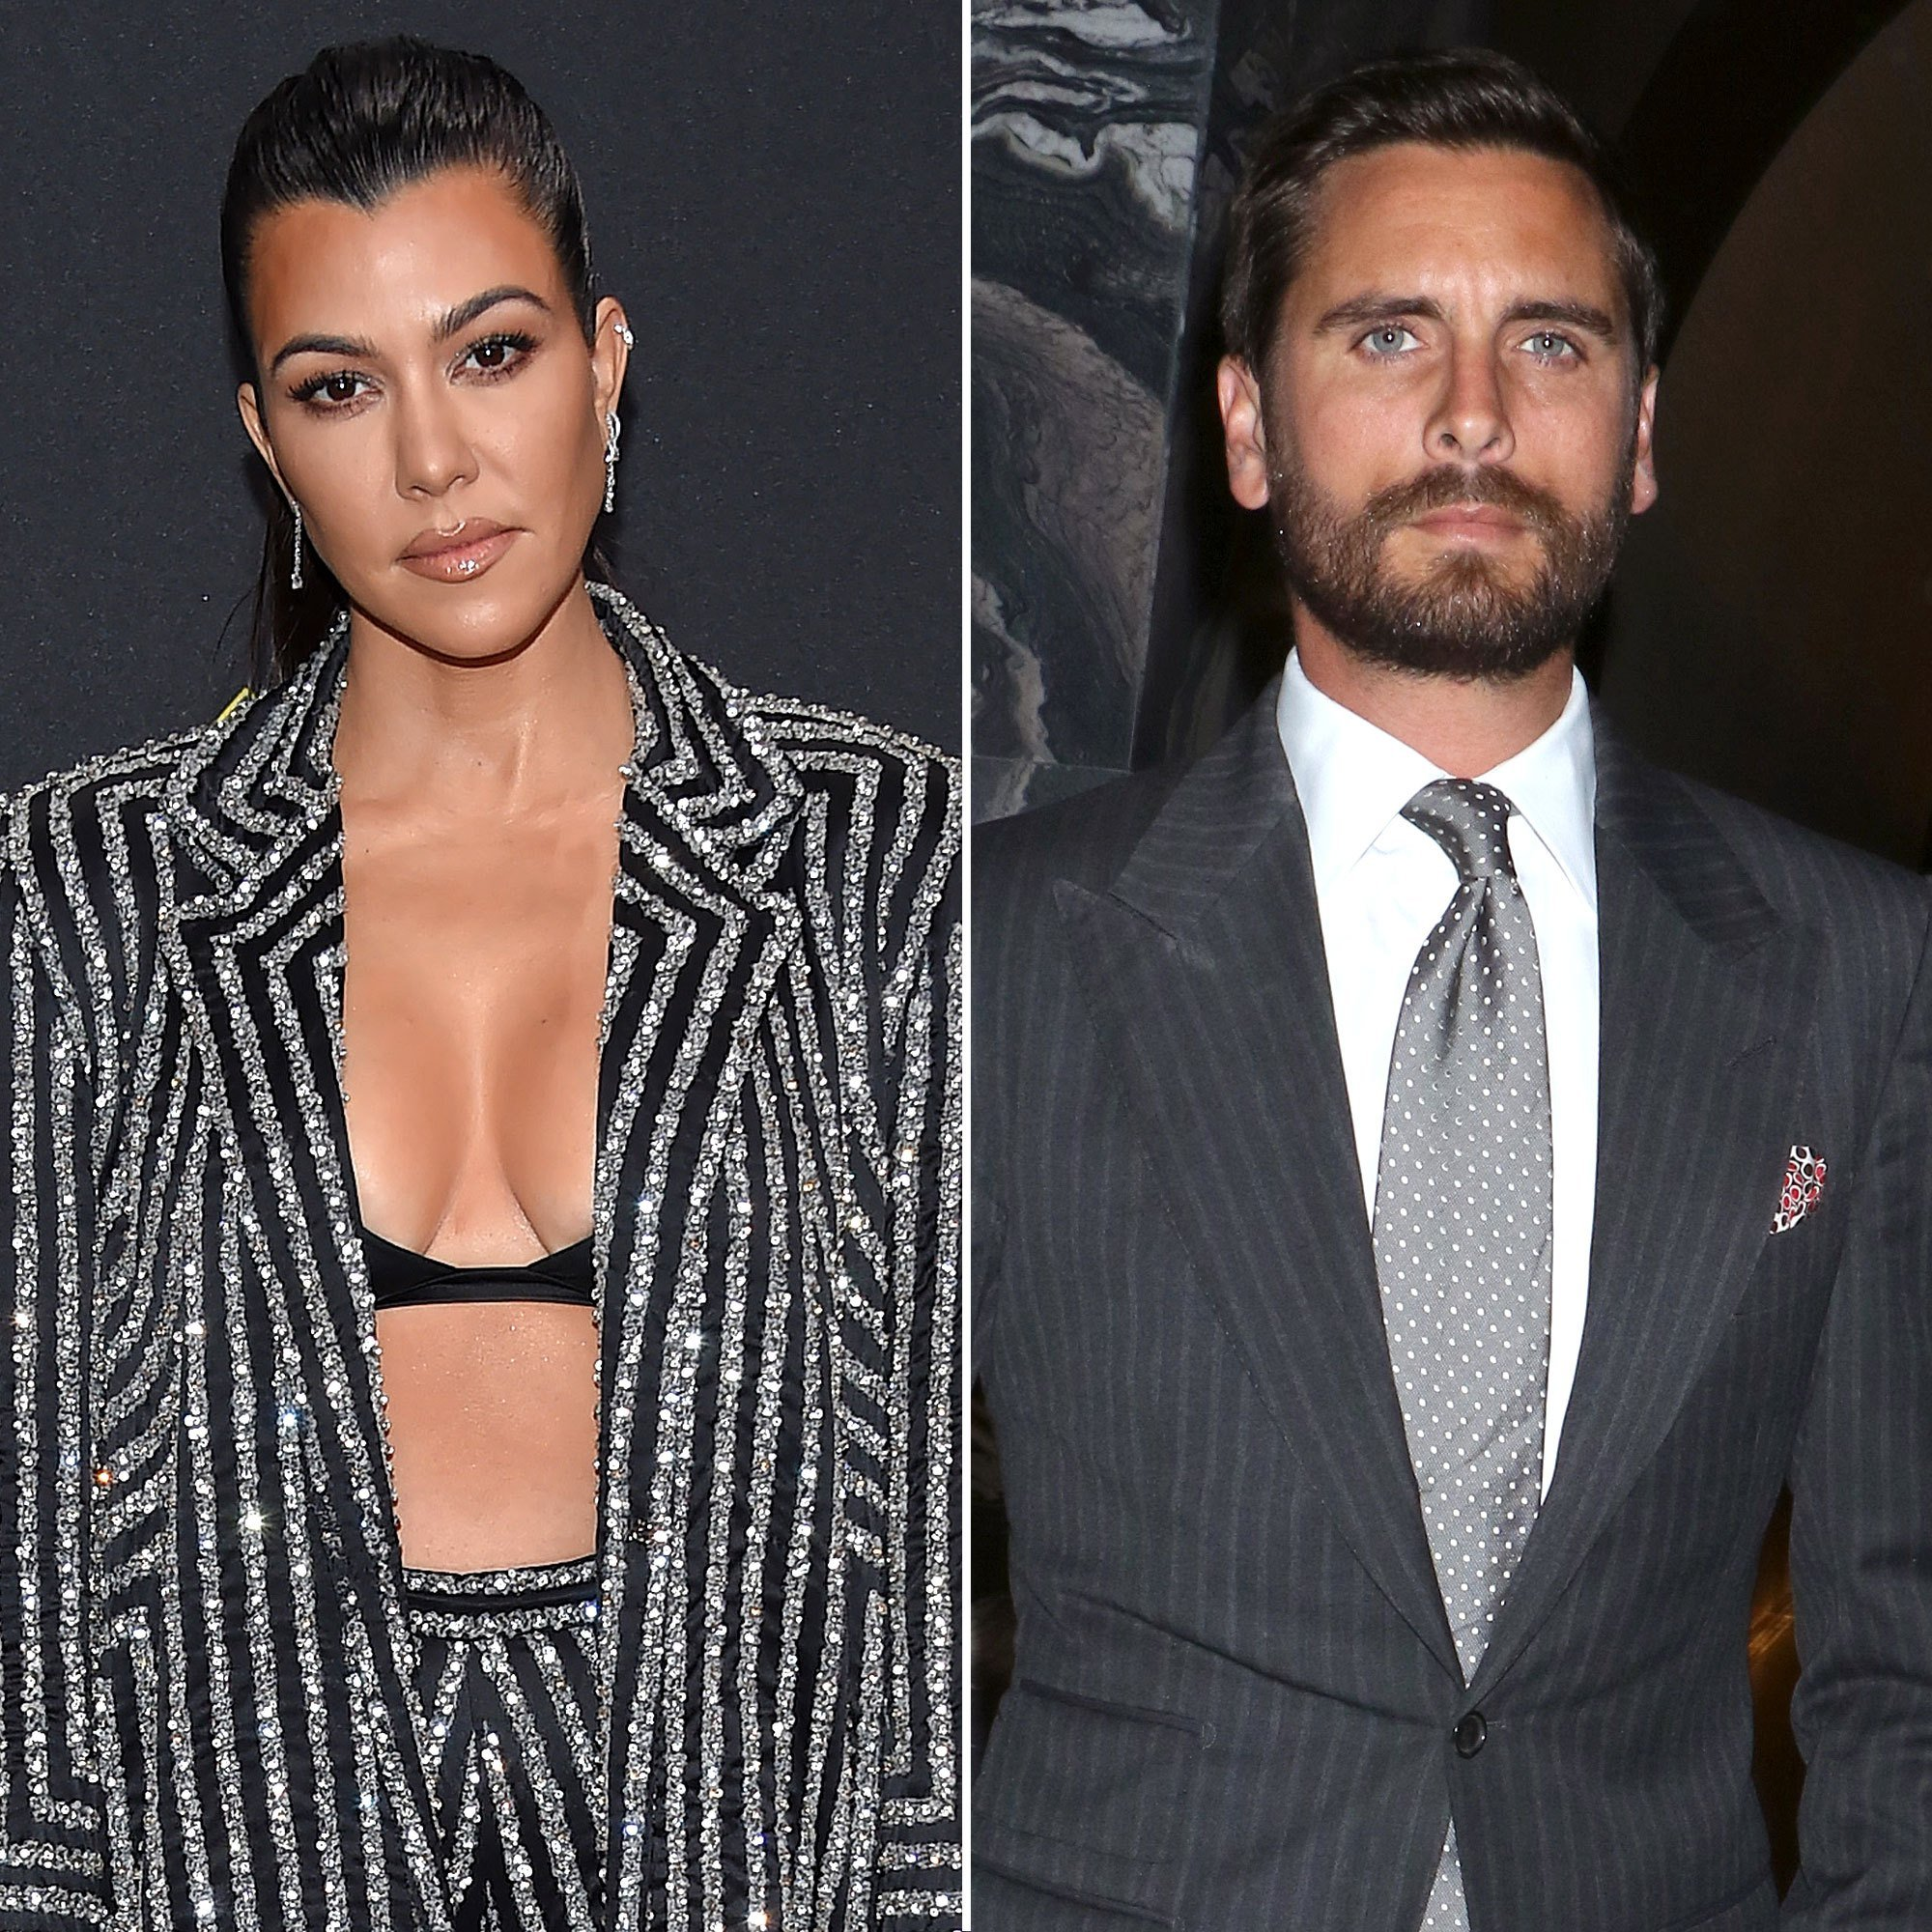 KUWTK: Inside Kourtney Kardashian's Reaction To Scott Disick Partying Without A Mask!